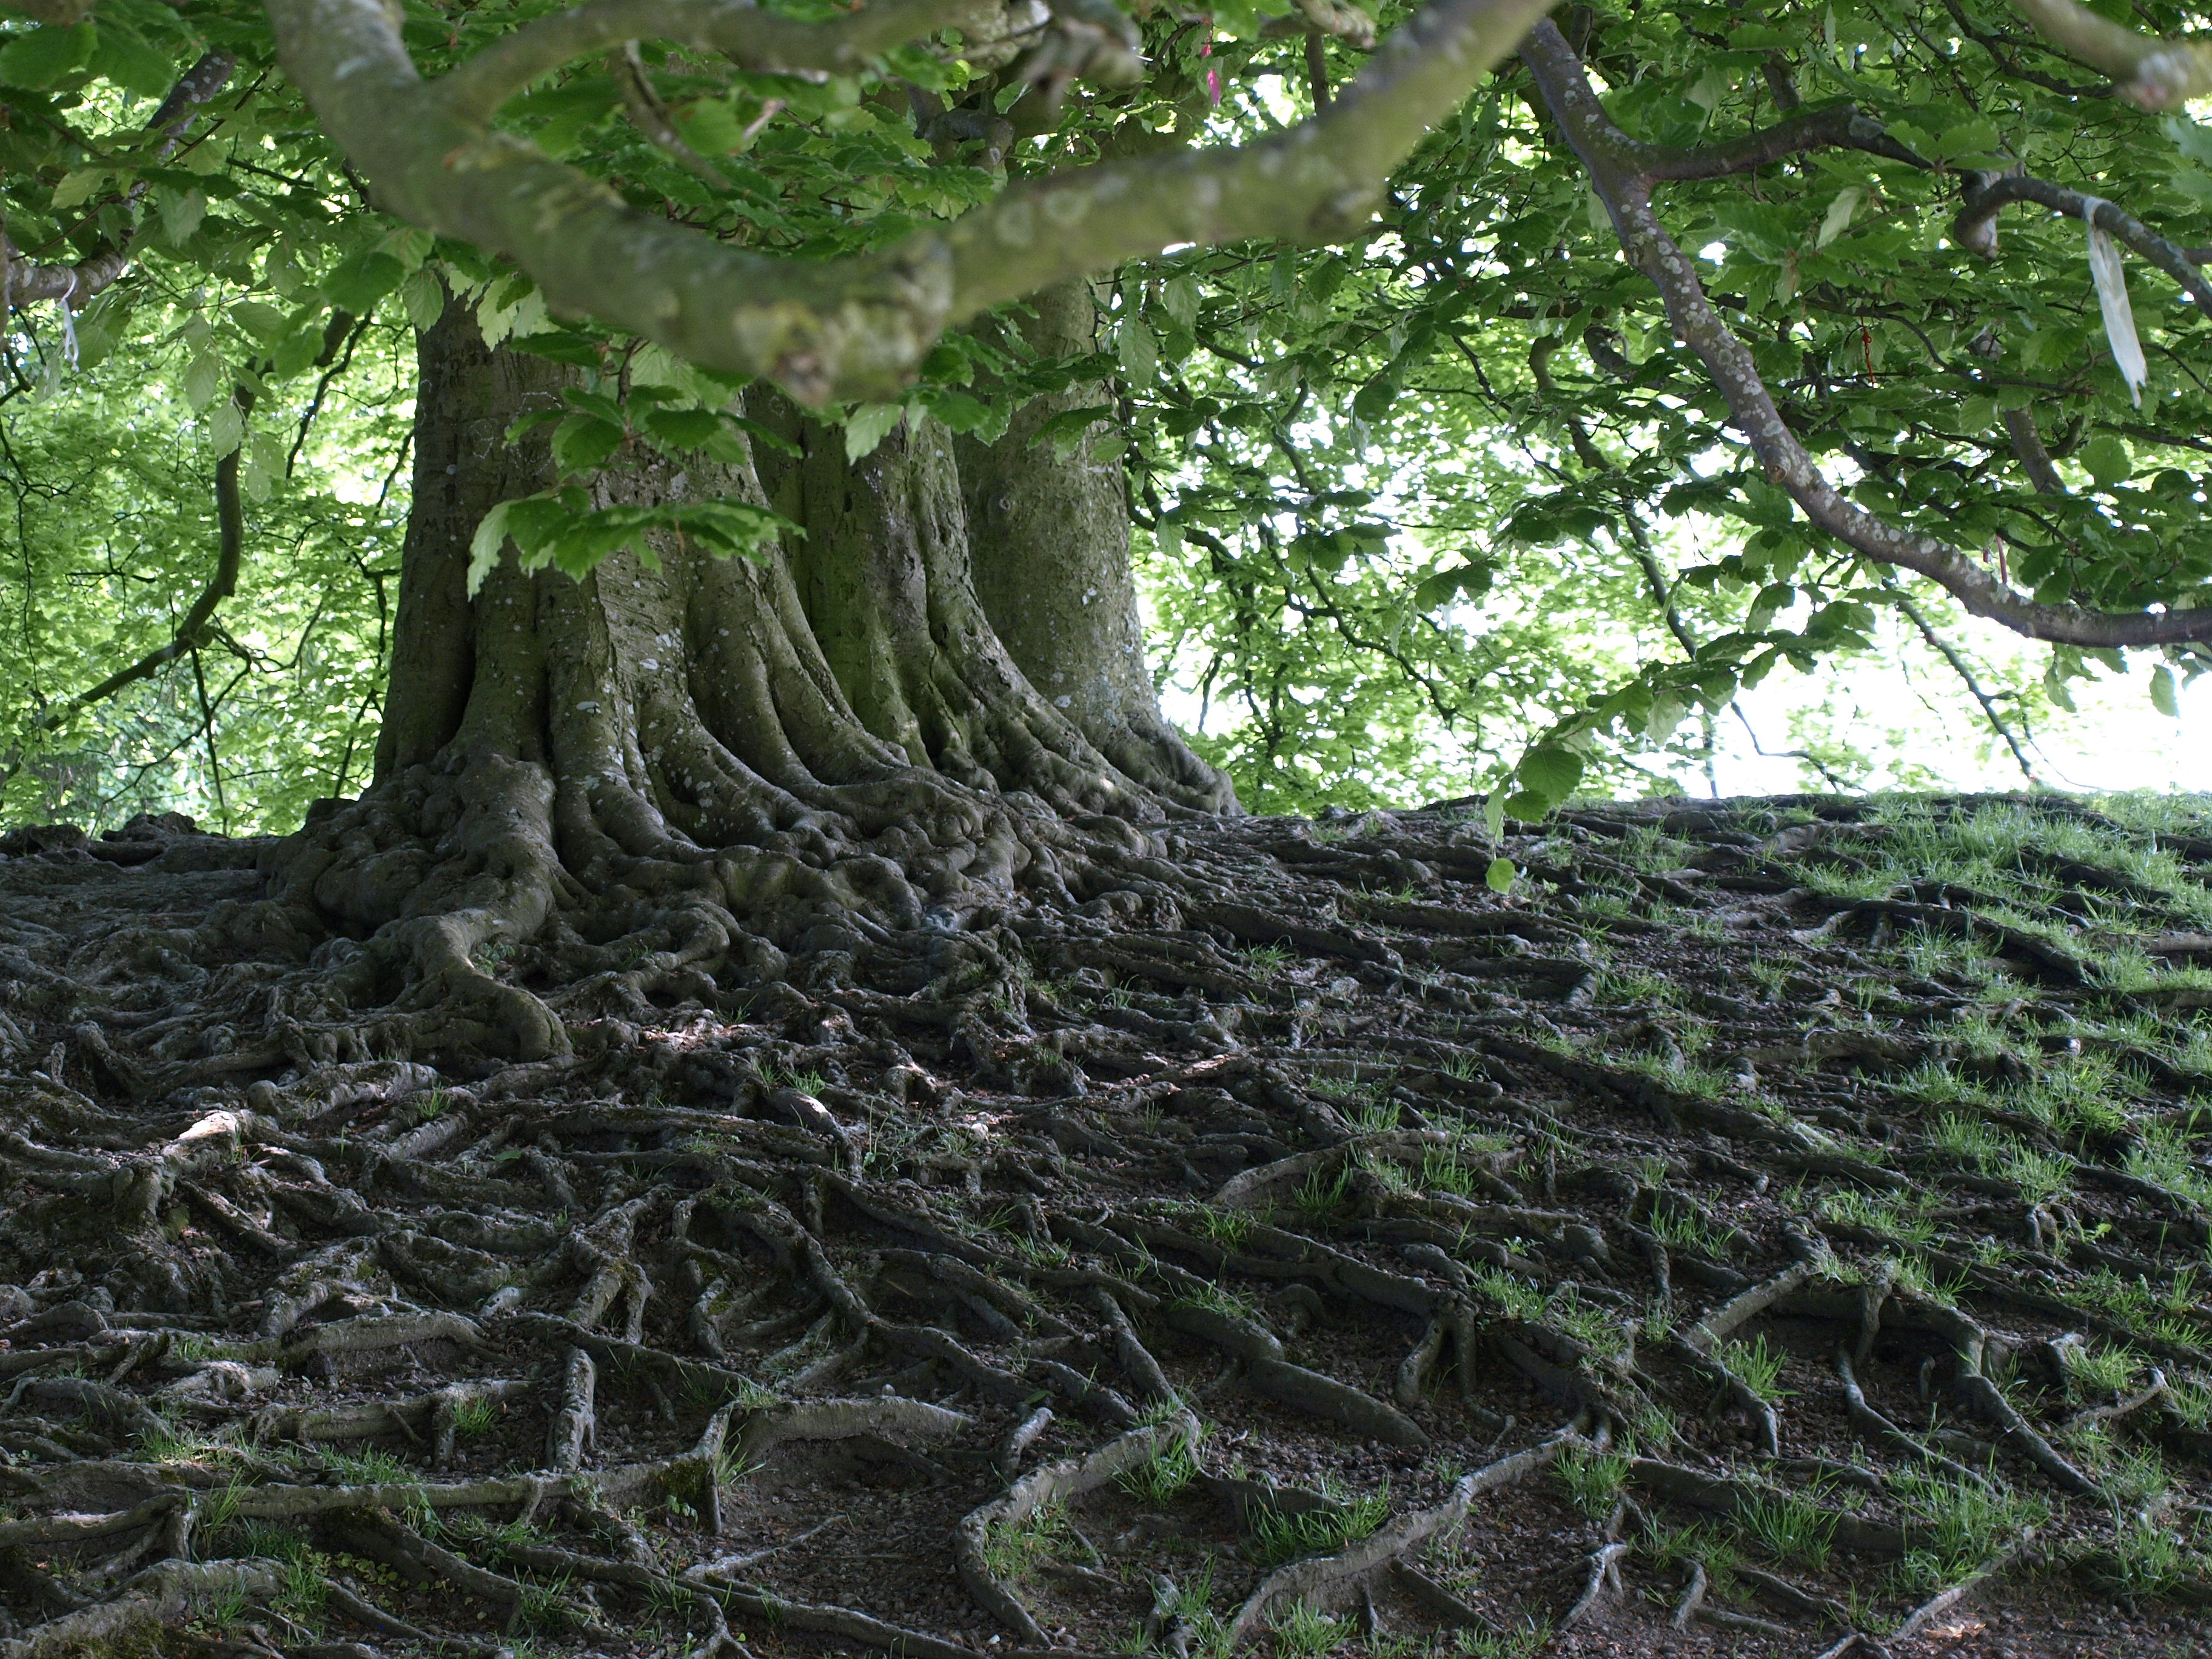 Closeup of the Serpentine Roots